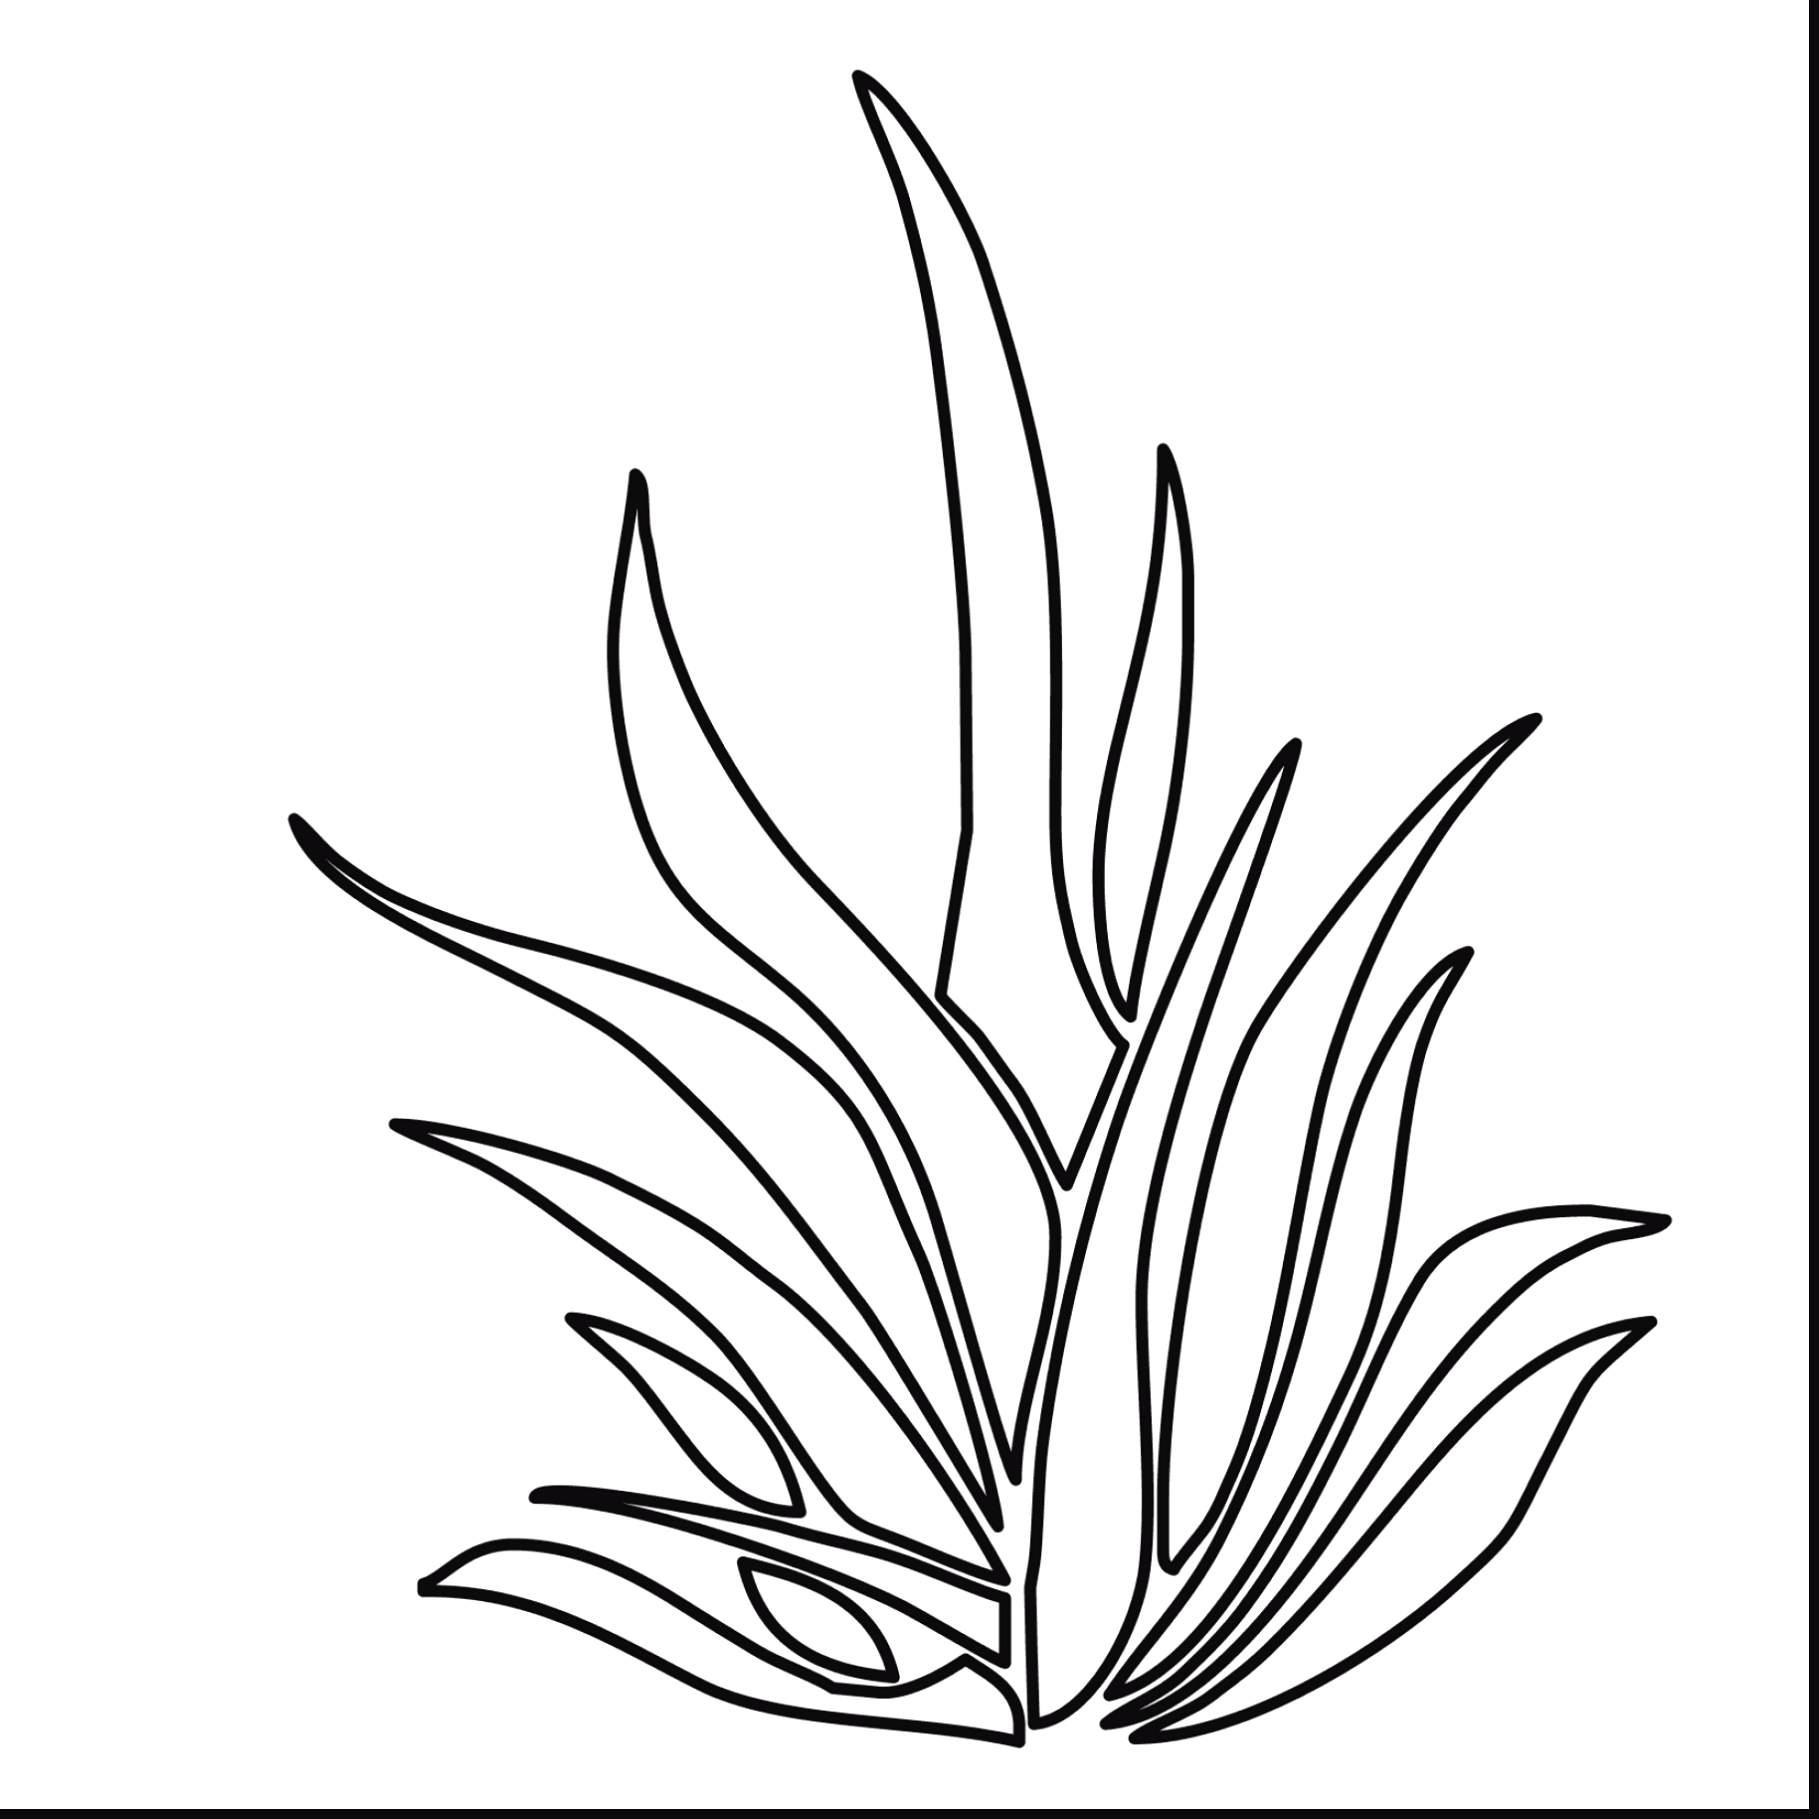 1819x1819 Grass Coloring Page Printable Coloring Pages